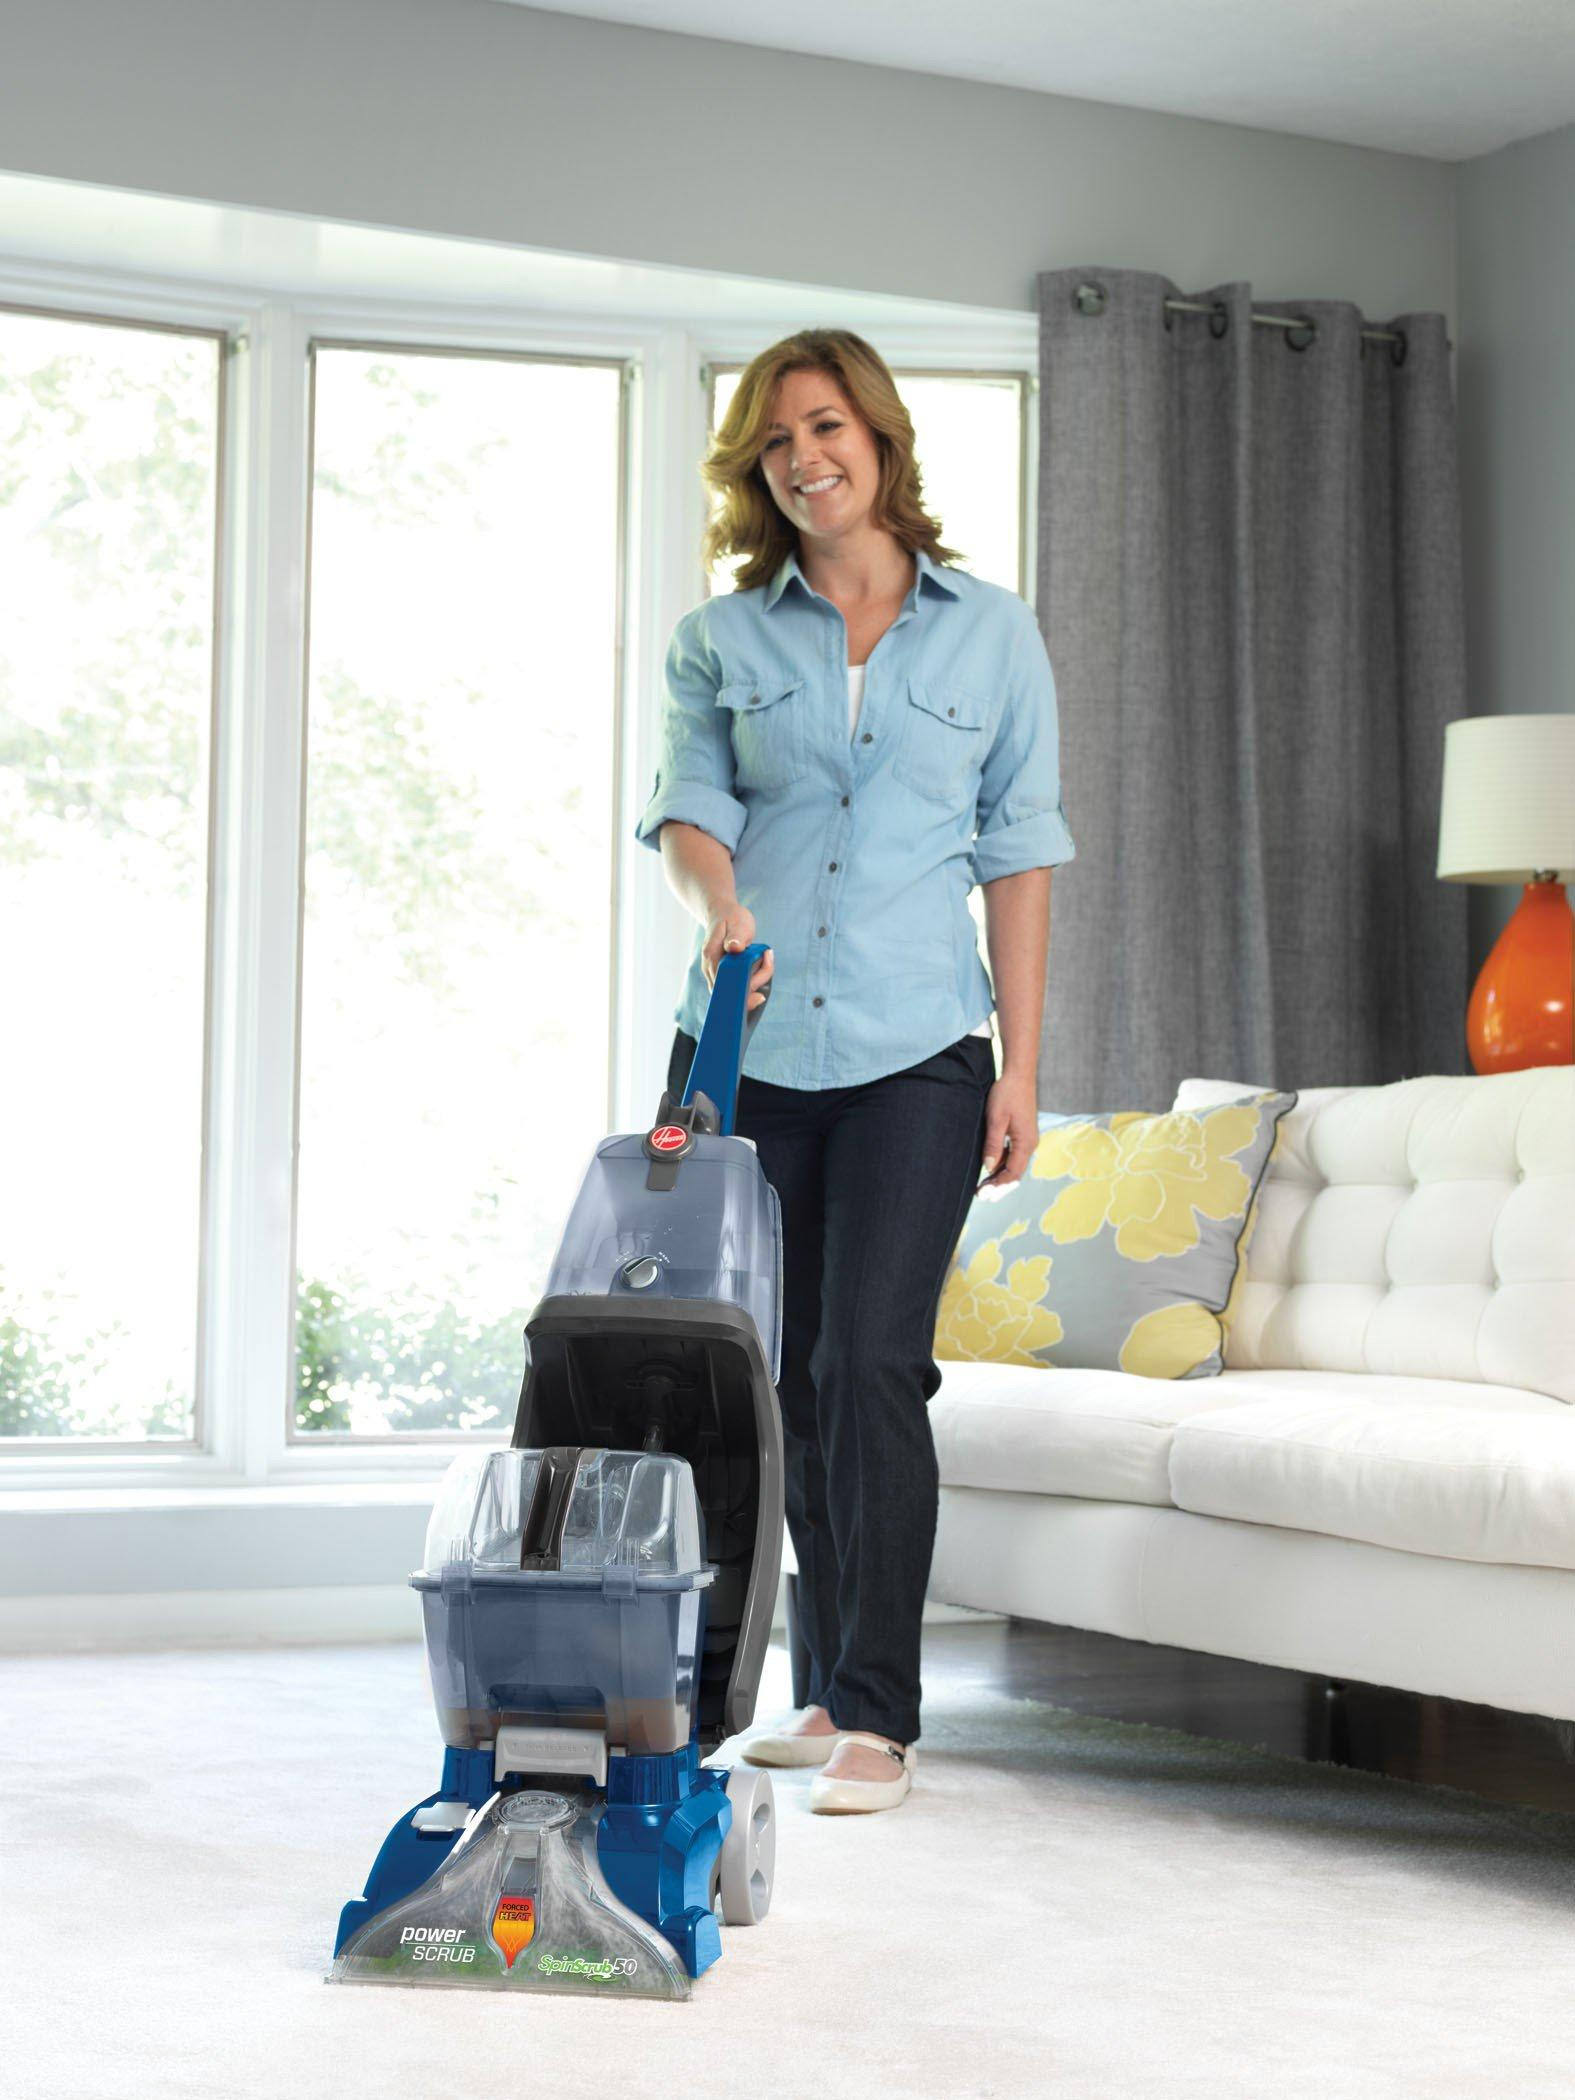 Reconditioned Power Scrub Carpet Cleaner3